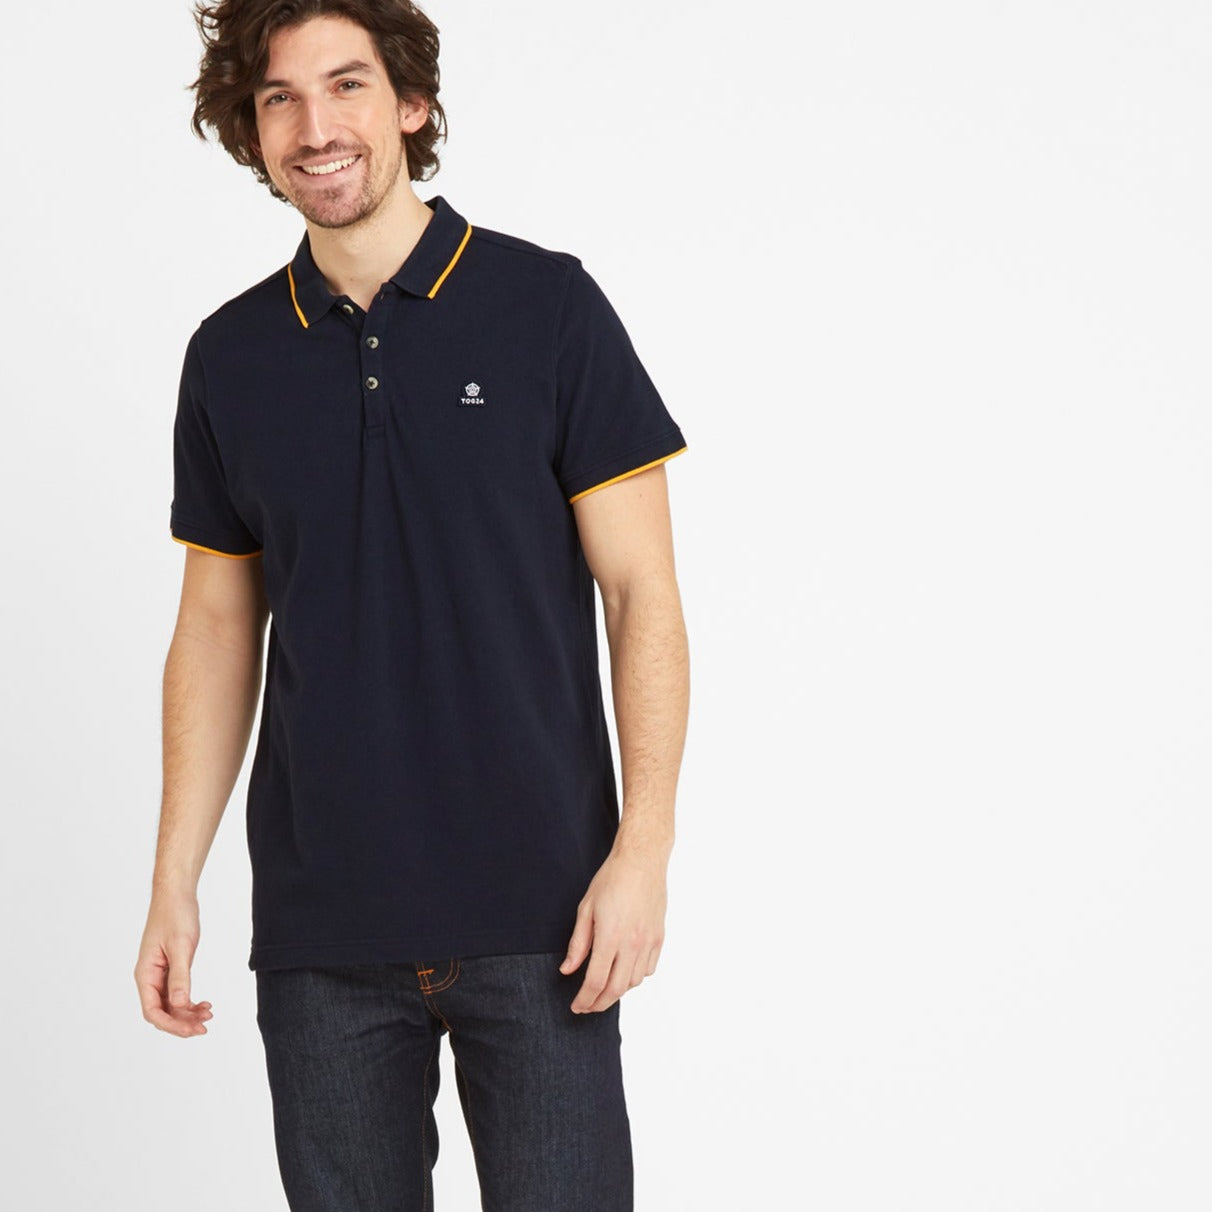 Grindale Mens Pique Polo Shirt - Dark Indigo image 4